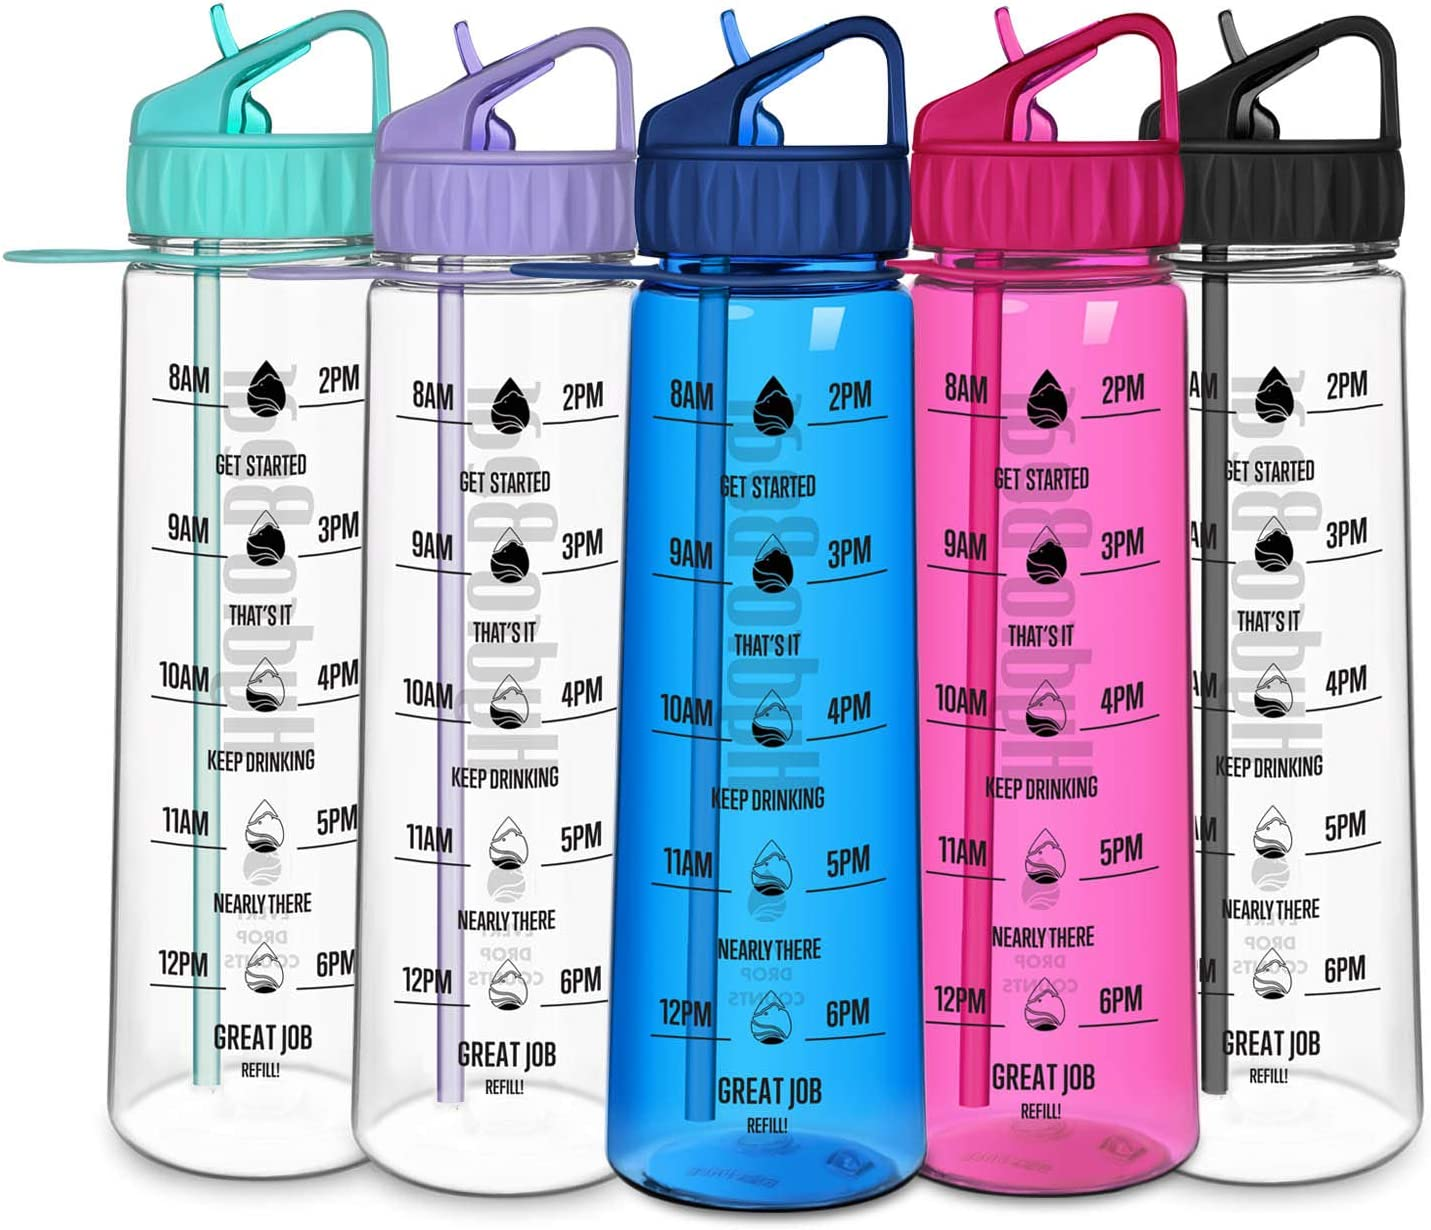 30 Ounce Motivational Water Bottle with Time Marker | Large BPA Free Tritan Sports Inspirational Water Bottle with Straw for Fitness, Hiking and Outdoors | Drink More Water Daily (Tiffany Blue)